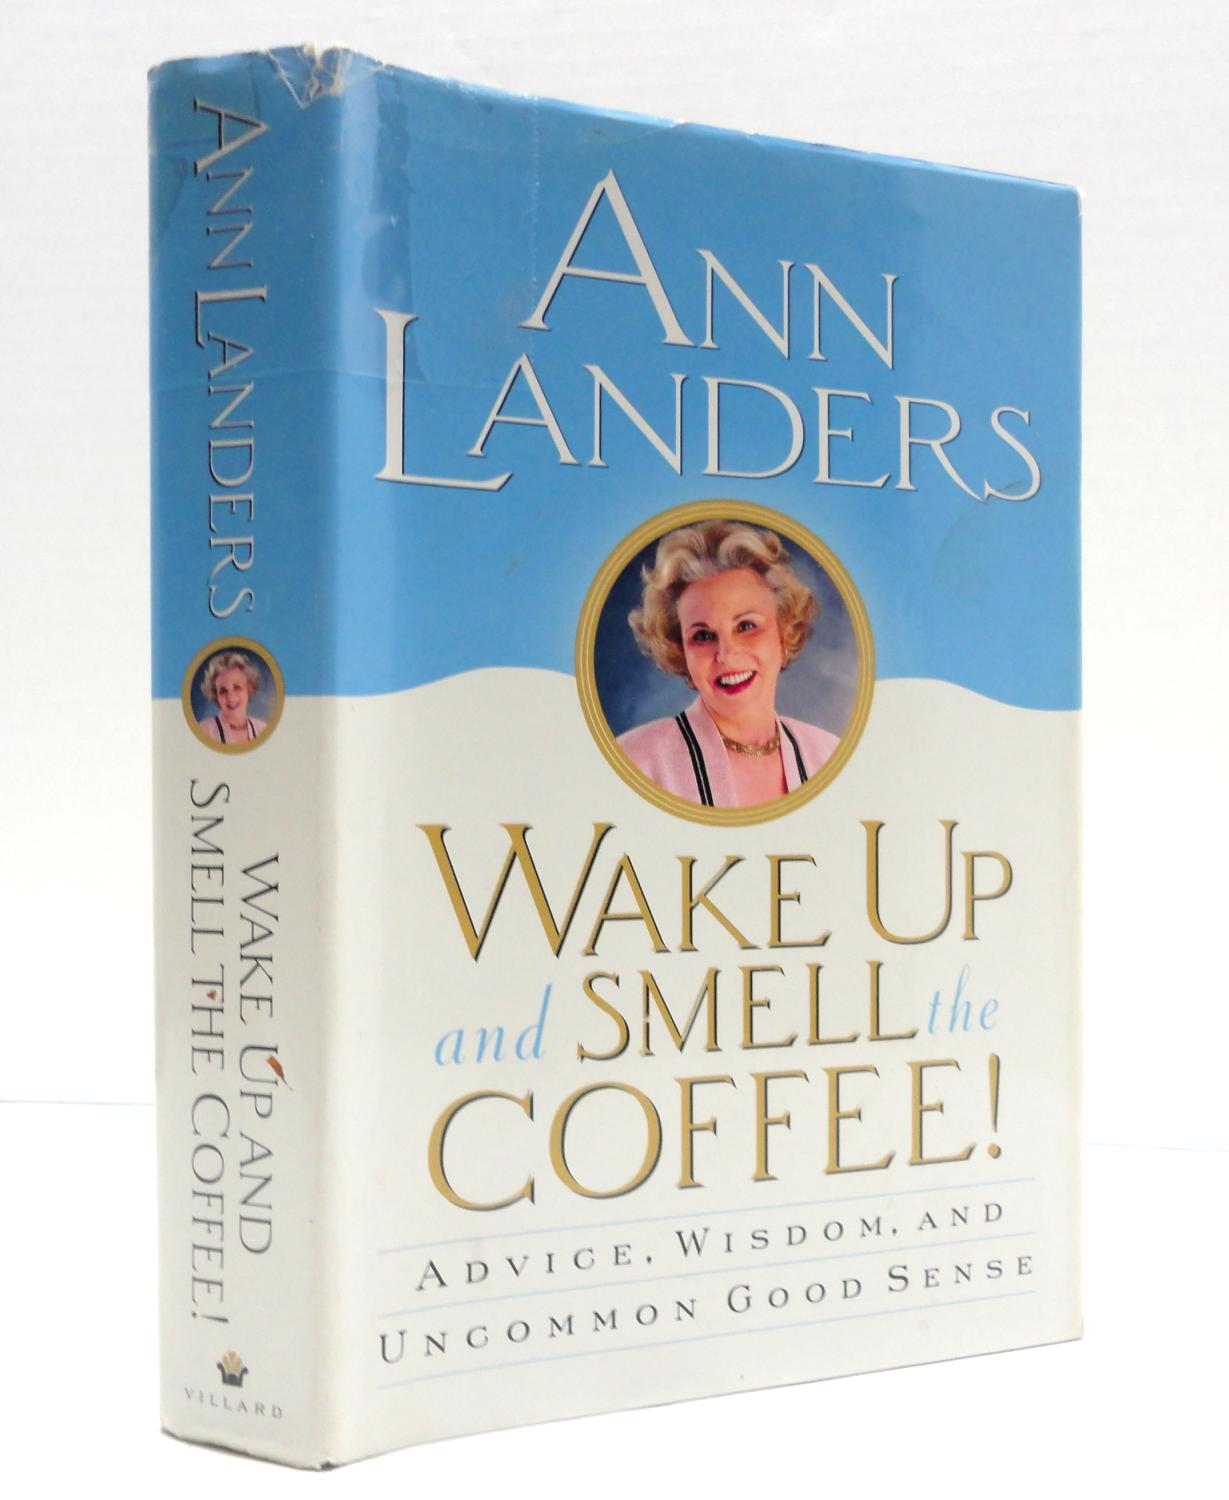 Wake Up and Smell the Coffee! book image